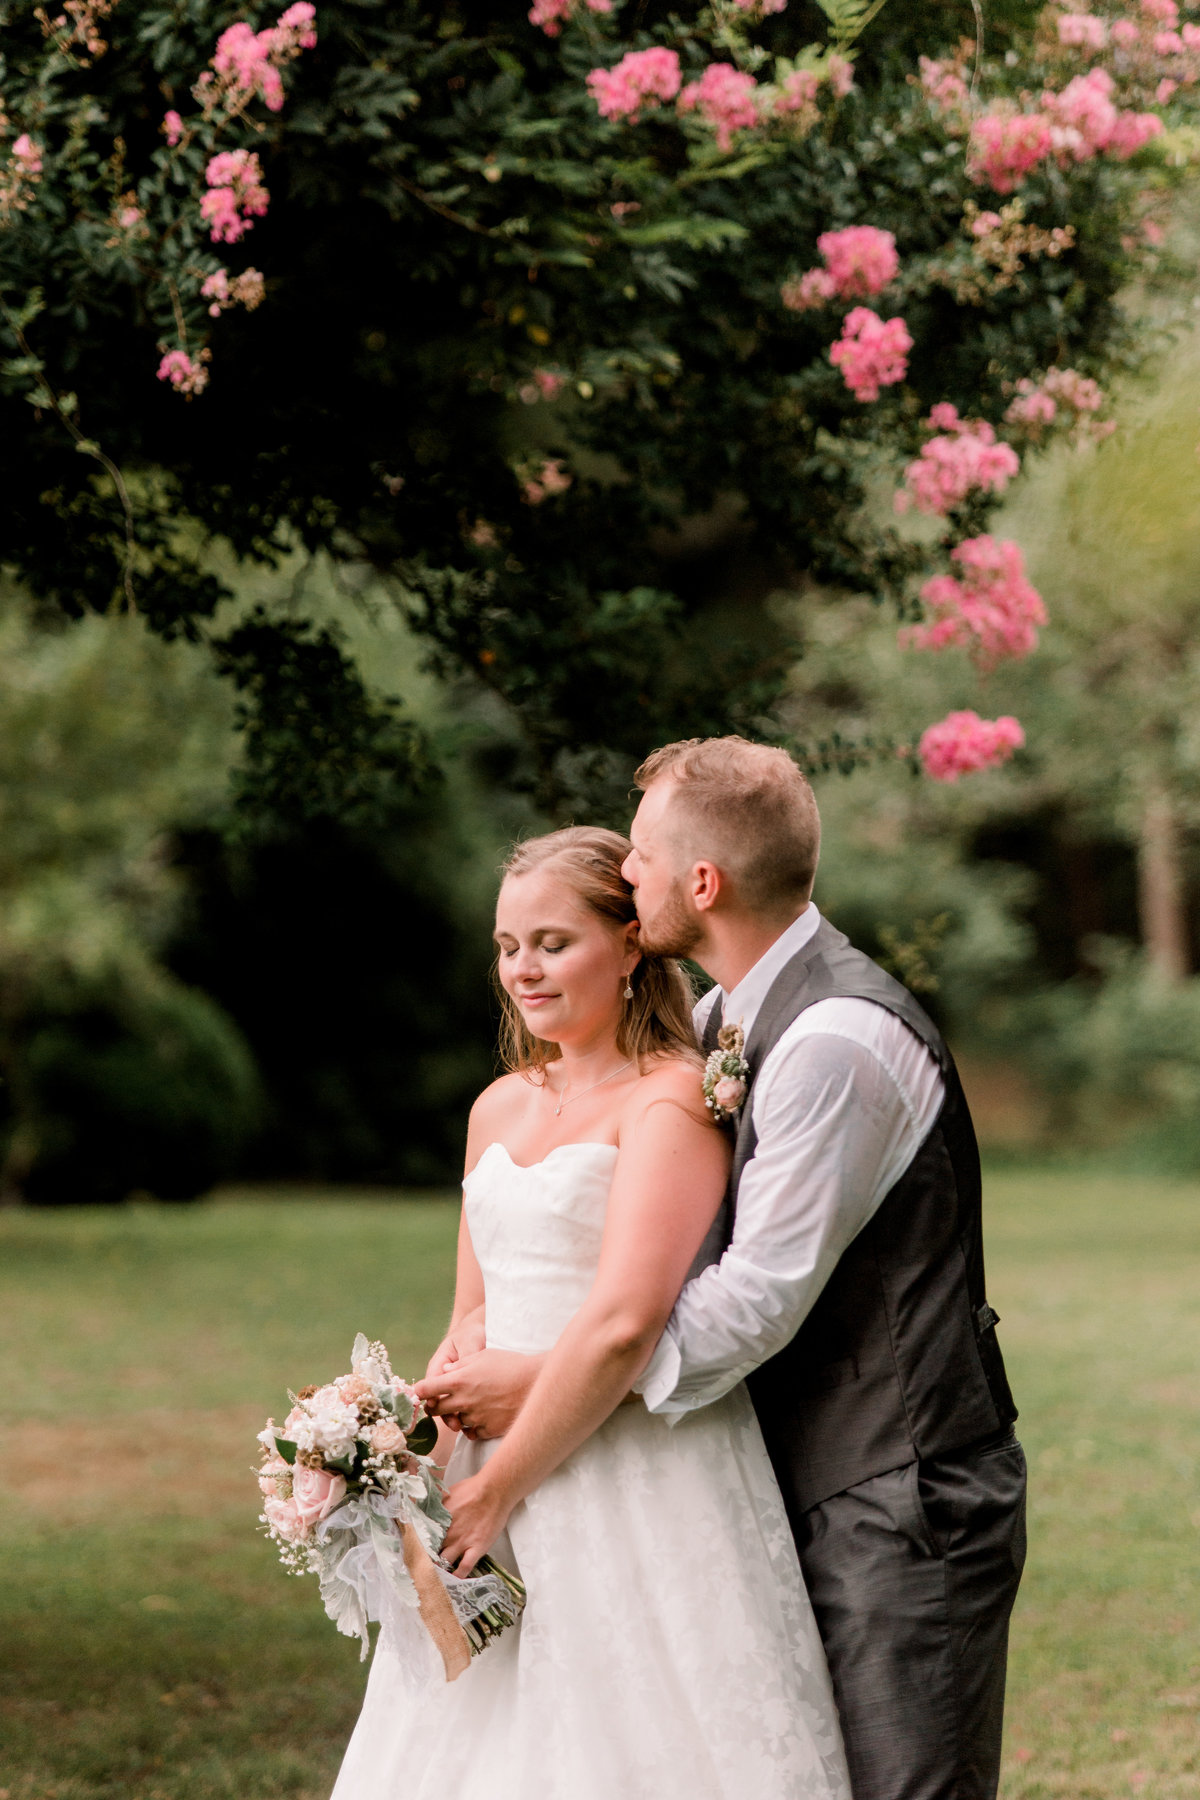 sharonelizabethphotography-surryvirginiawedding-rusticbackyardwedding-richmondvirginiaoutdoorwedding4522